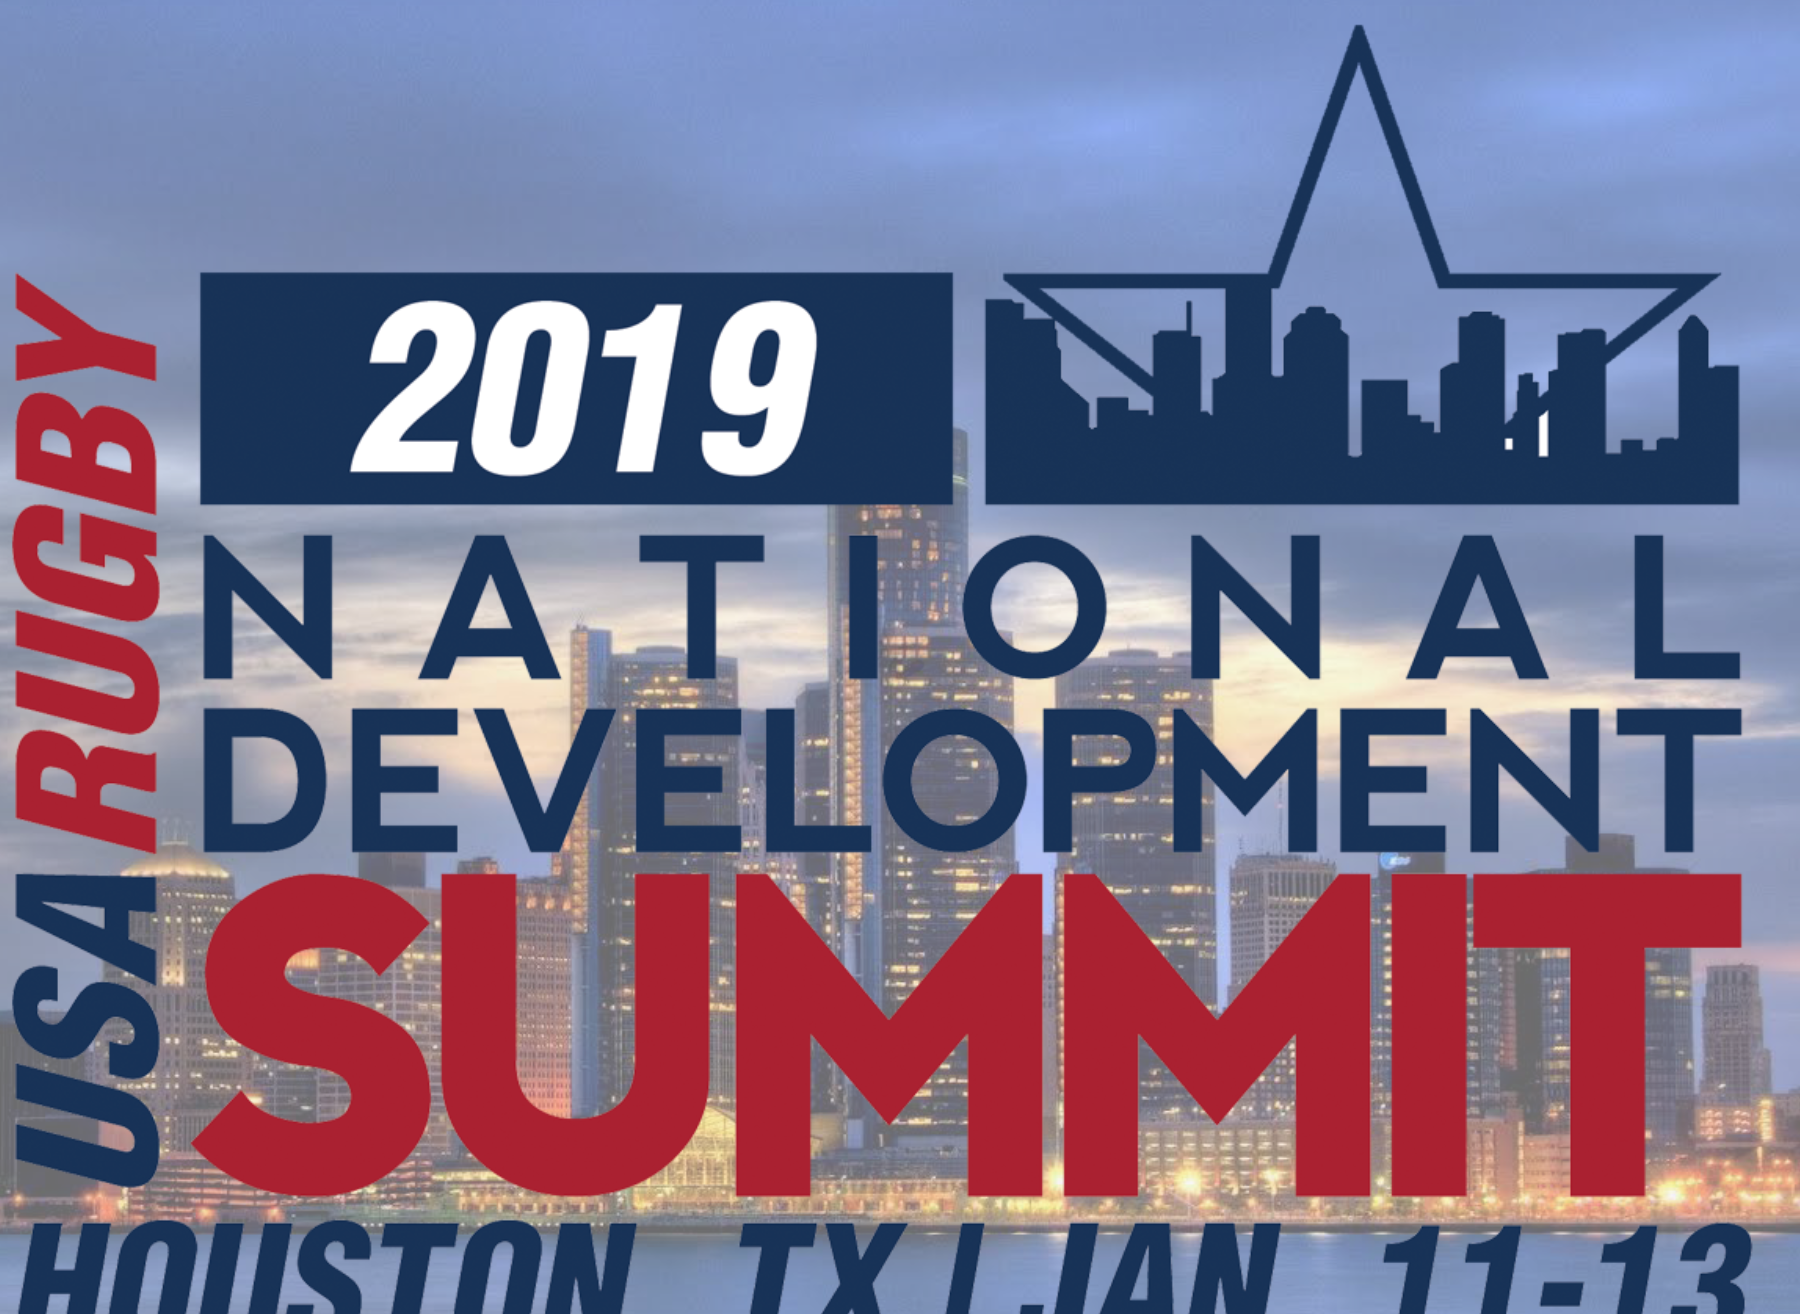 Houston to Host 2019 USA Rugby National Development Summit